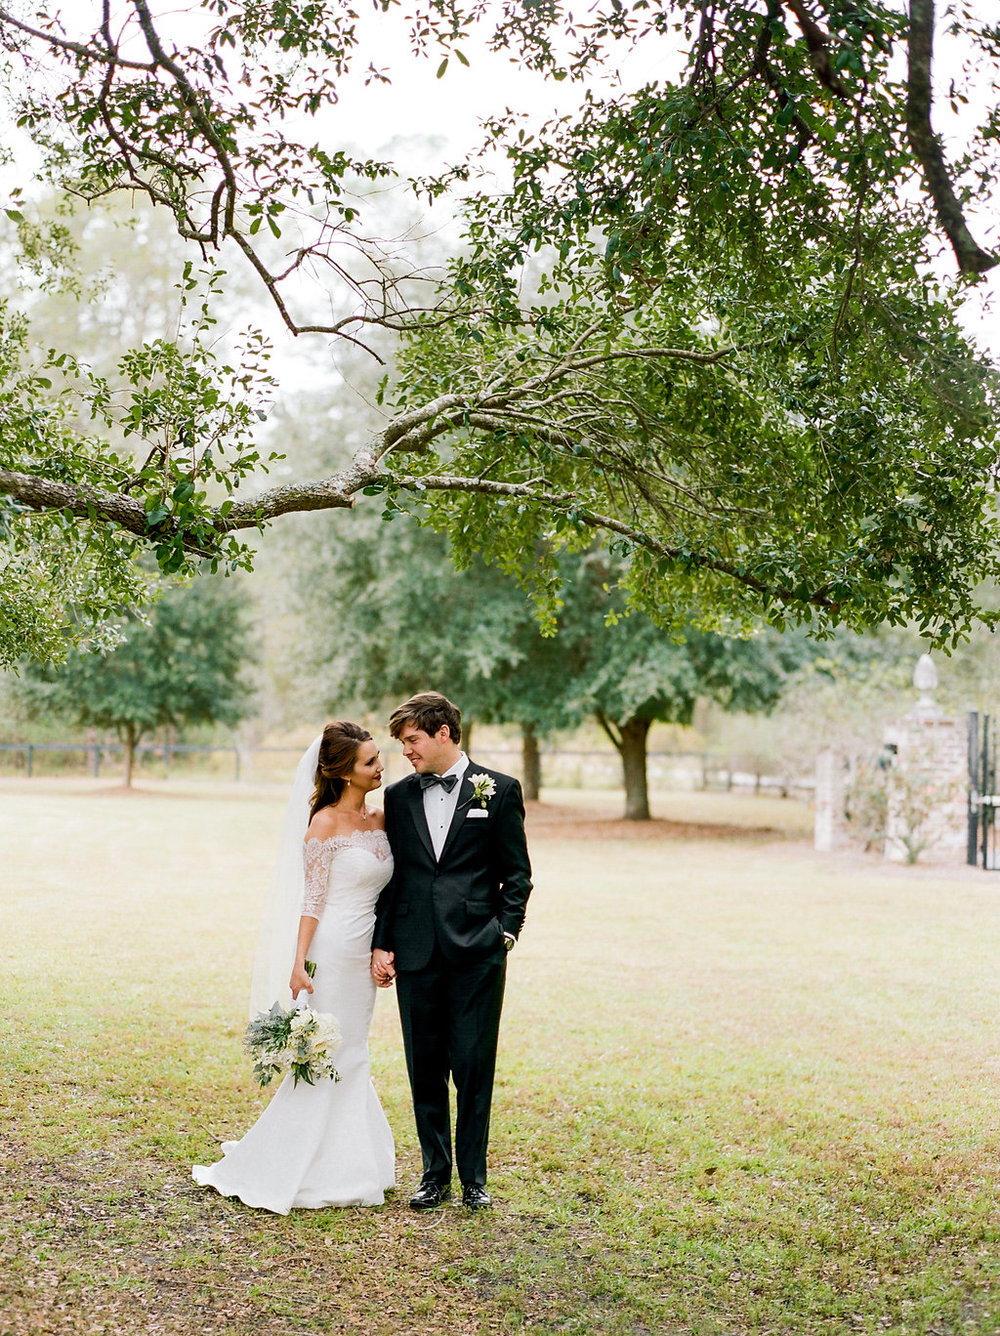 mps-photographie-nicole-miller-dakota-savannah-bridal-boutique-ivory-and-beau-bridal-boutique-savannah-weddings-savannah-bride-southern-bride-savannah-weddings-adele-amelia-veil-12.jpg